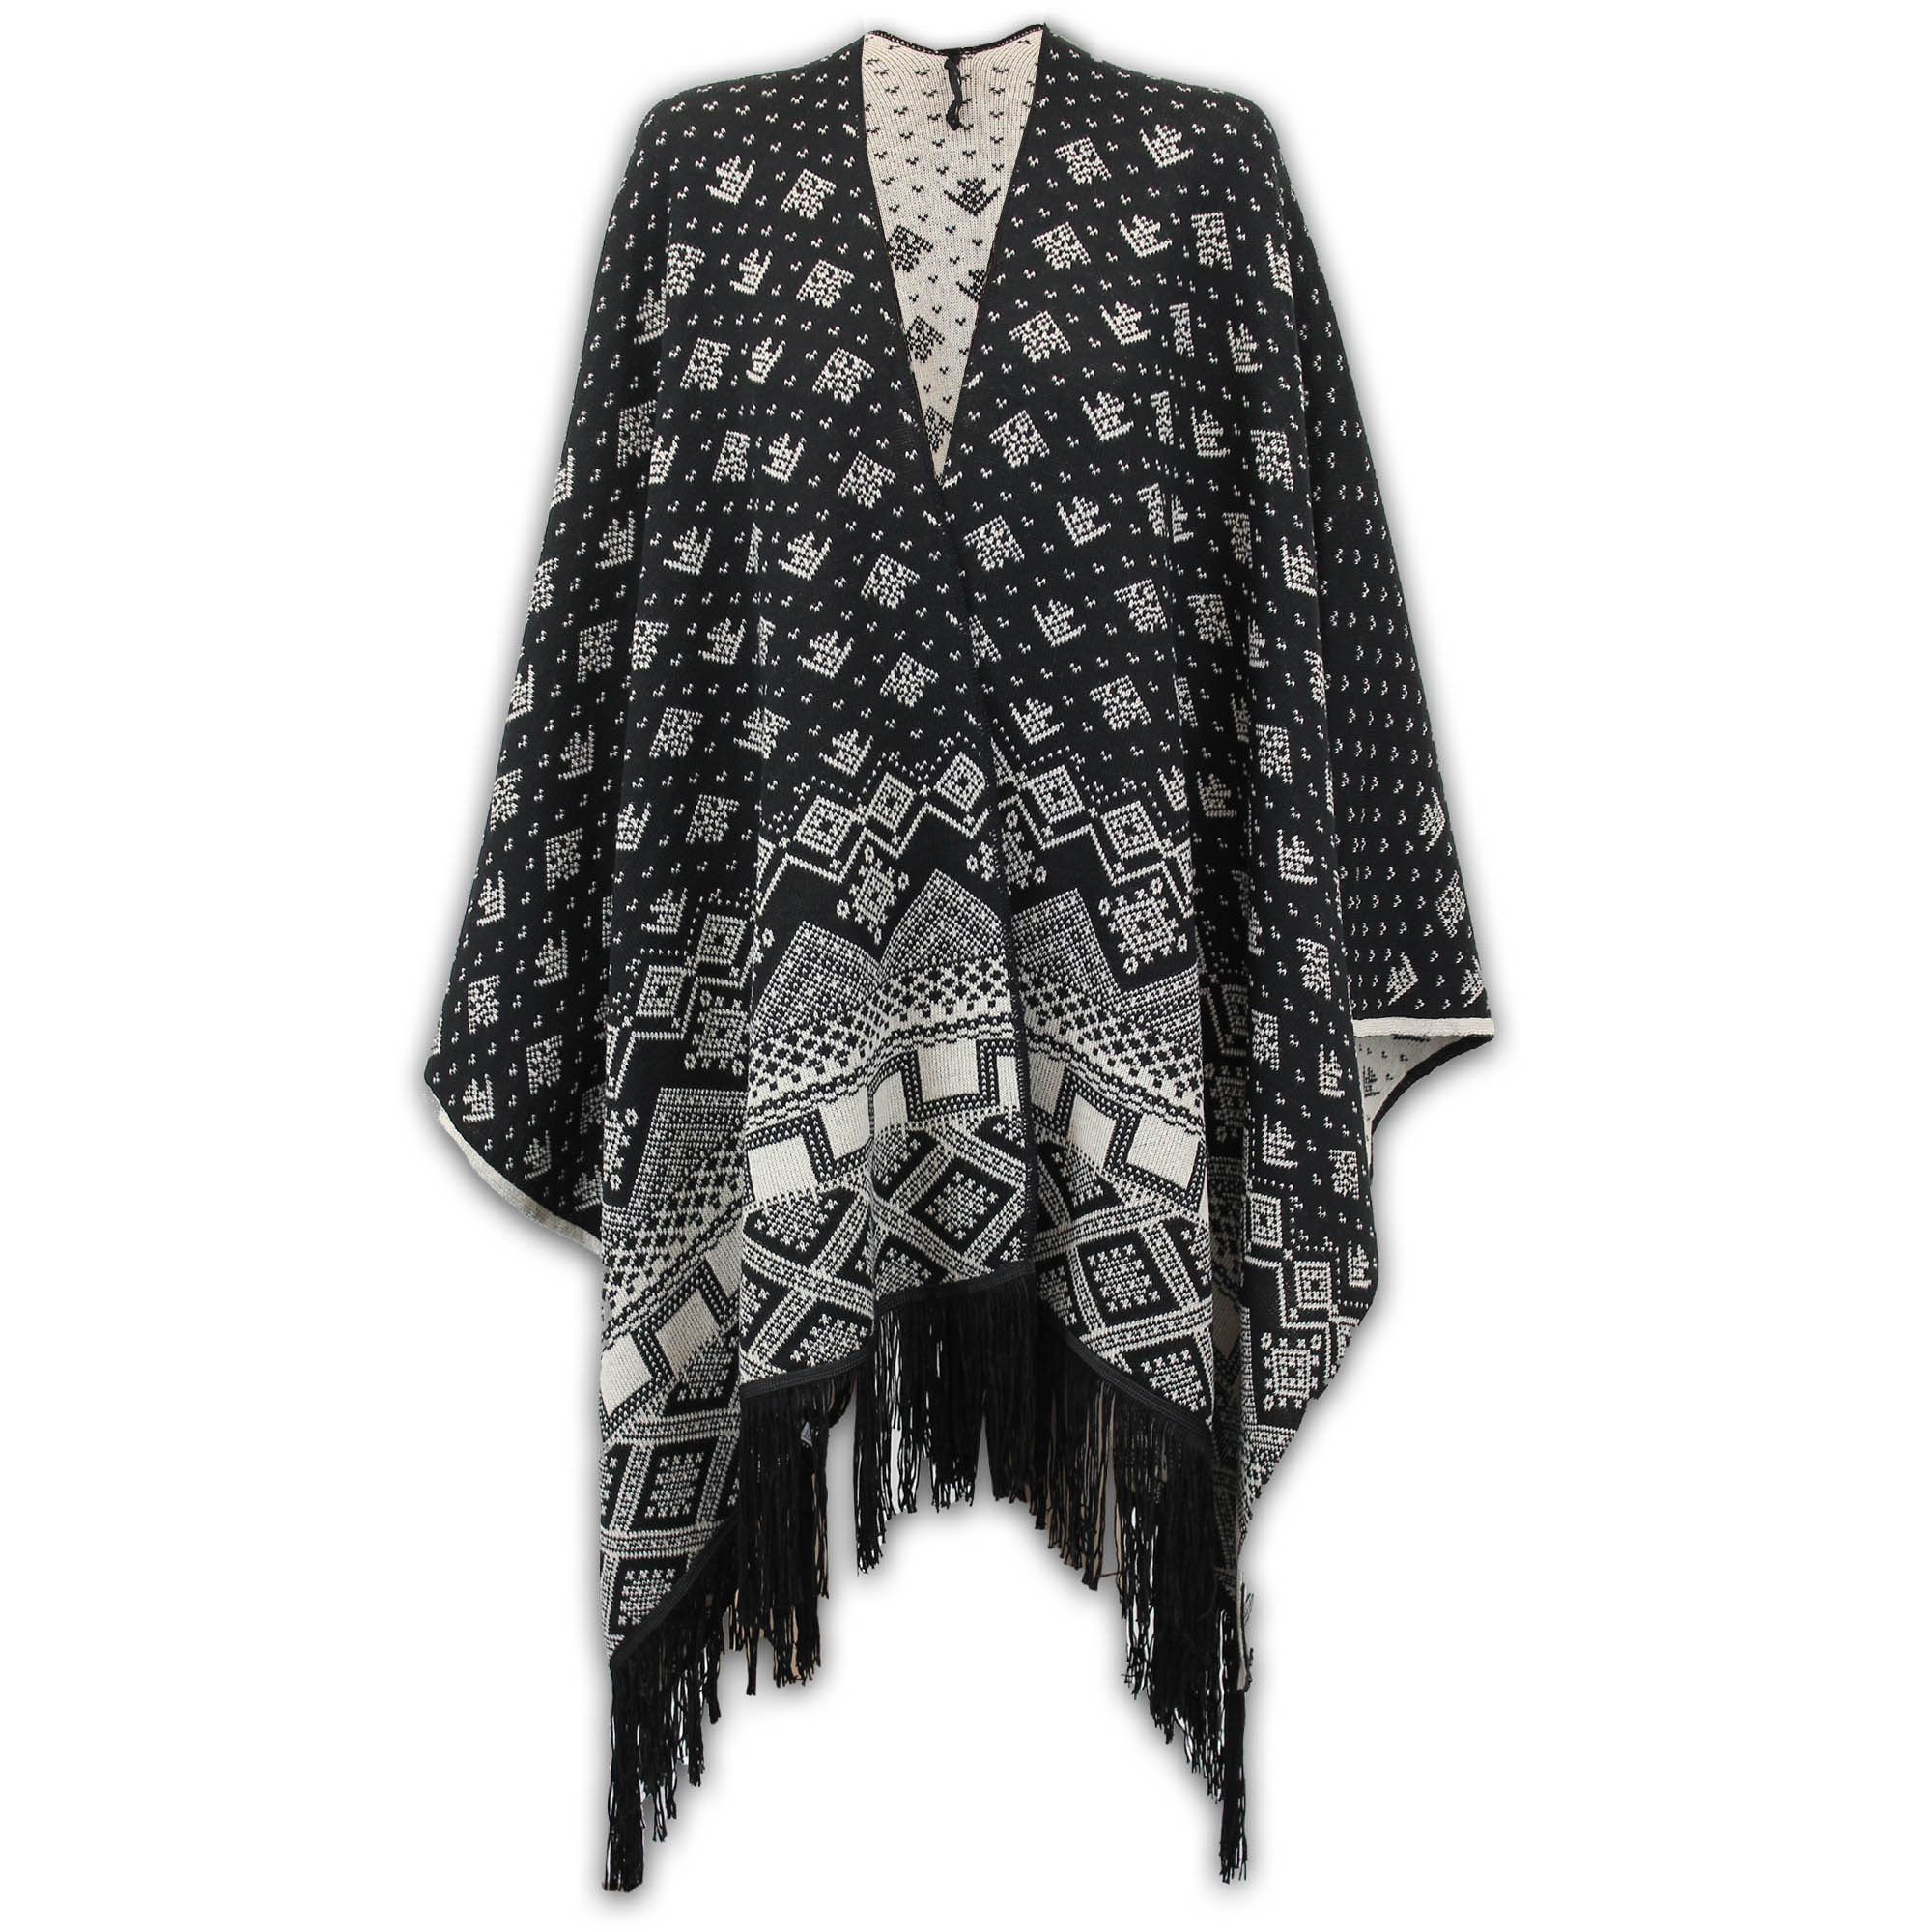 Ladies-Shawl-Womens-Knitted-Poncho-Cardigan-Reversible-Aztec-Cape-Oversized-New thumbnail 5